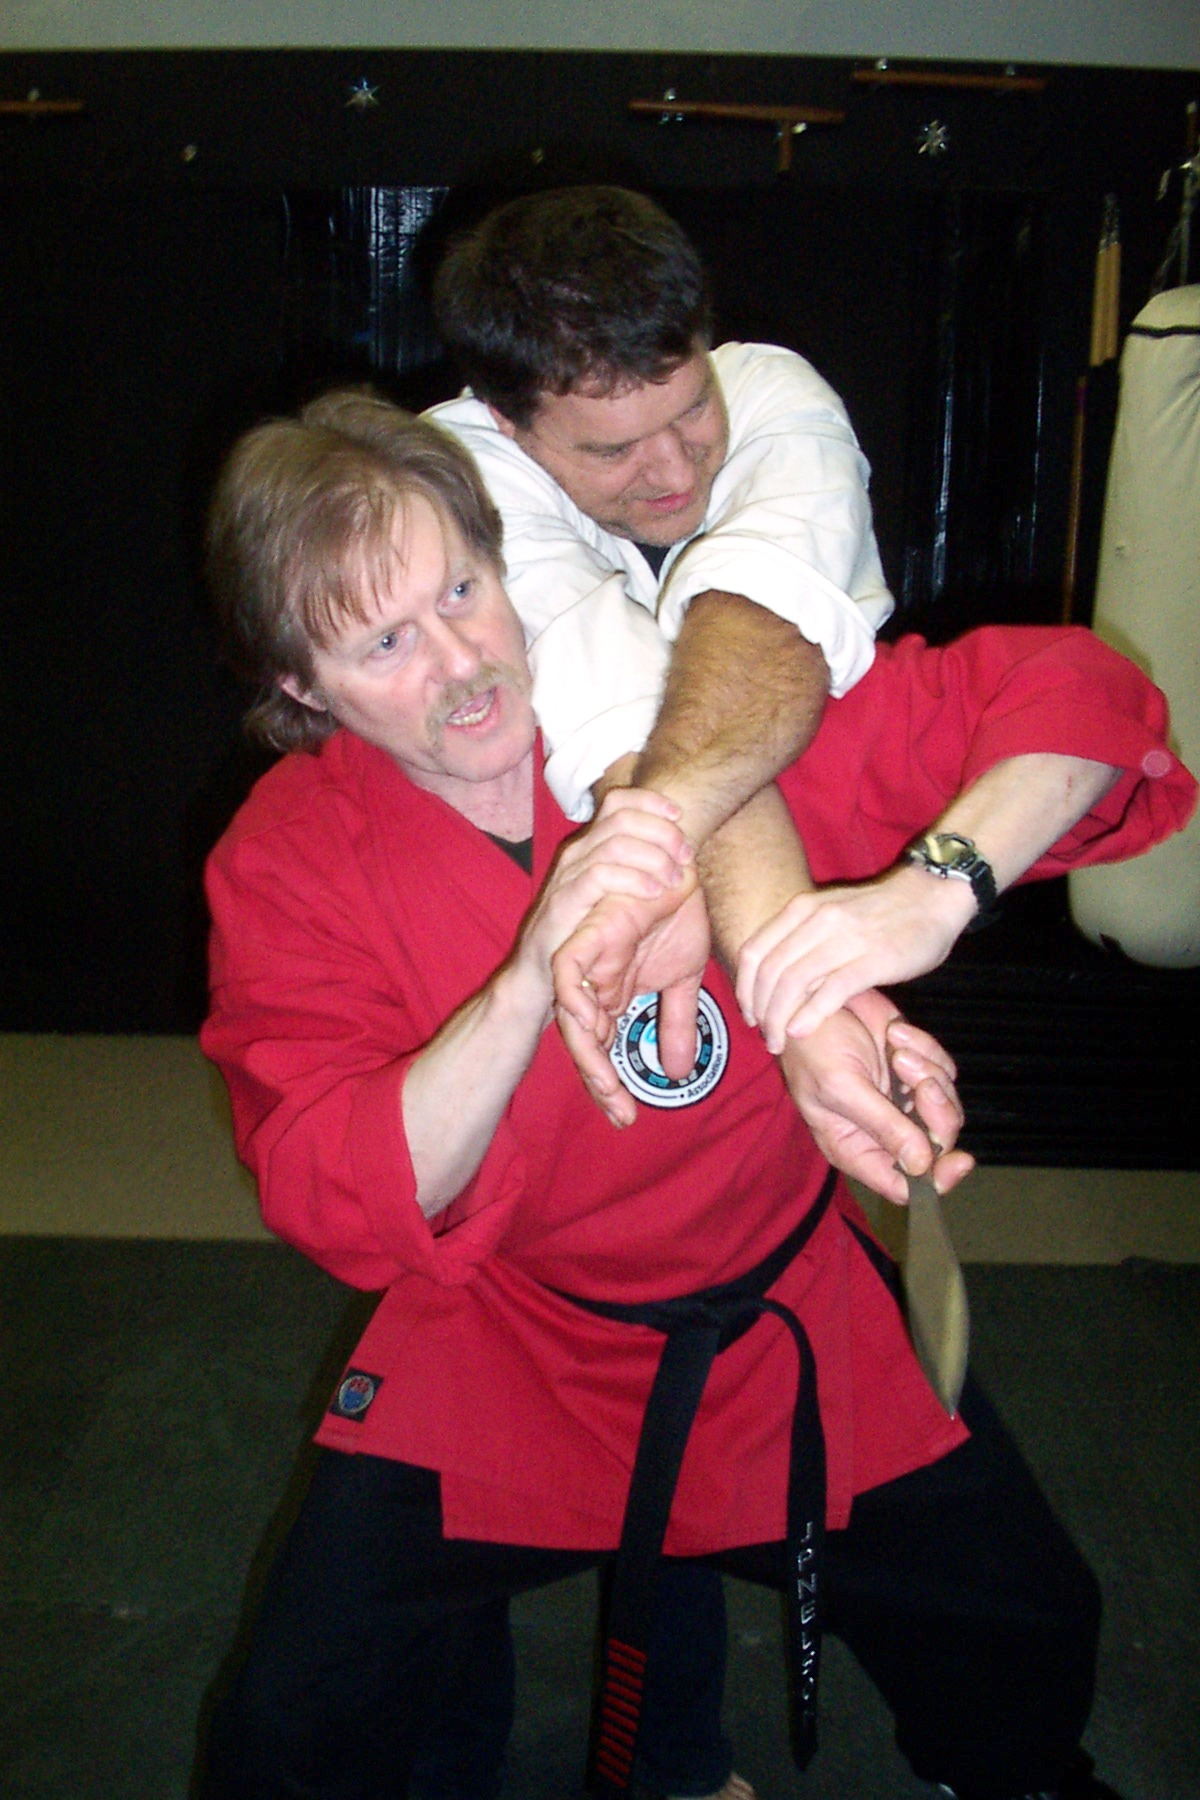 About Family Self Defense Center in Hickory, NC